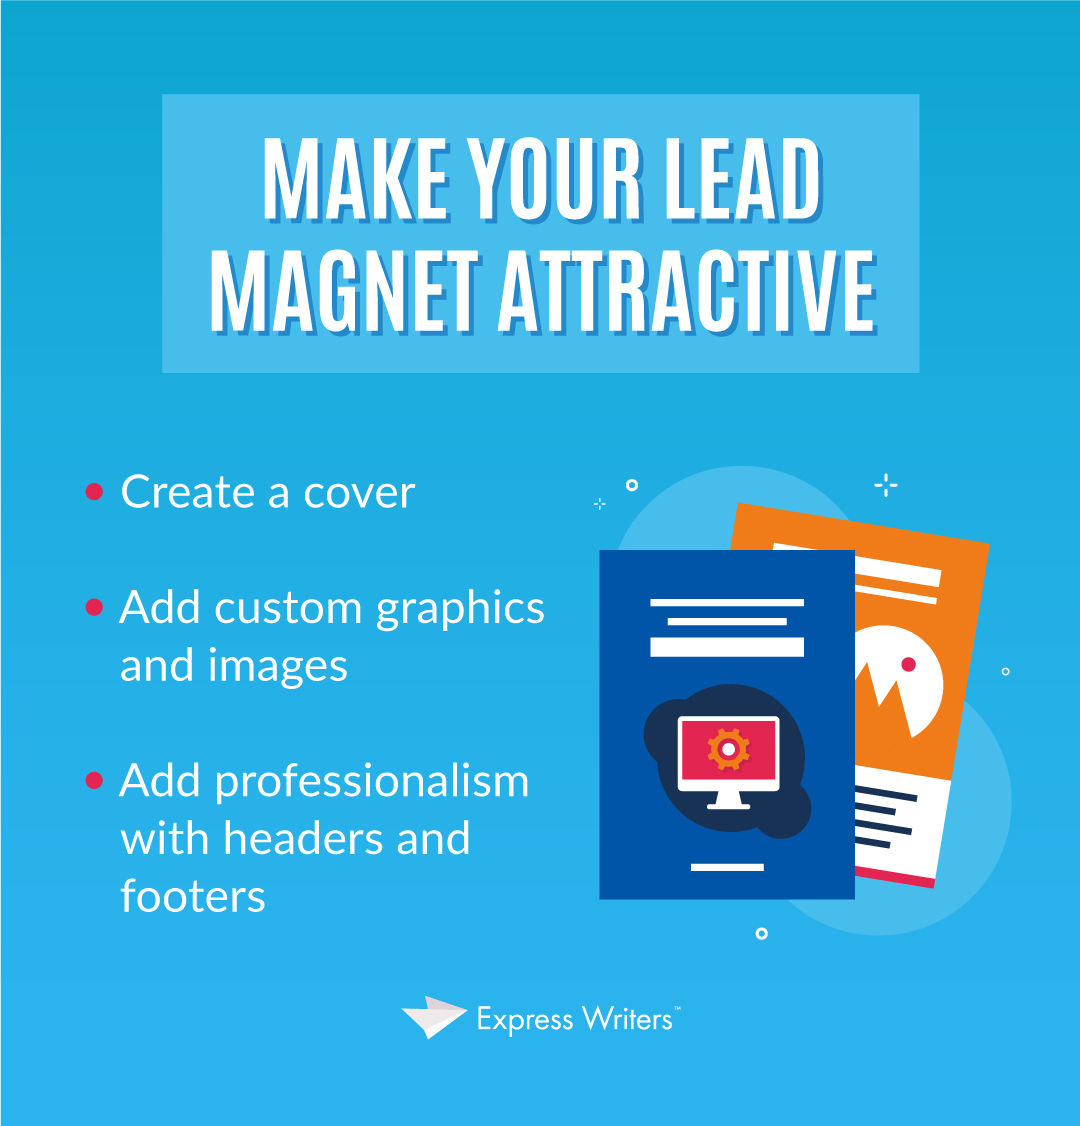 make your lead magnet attractive